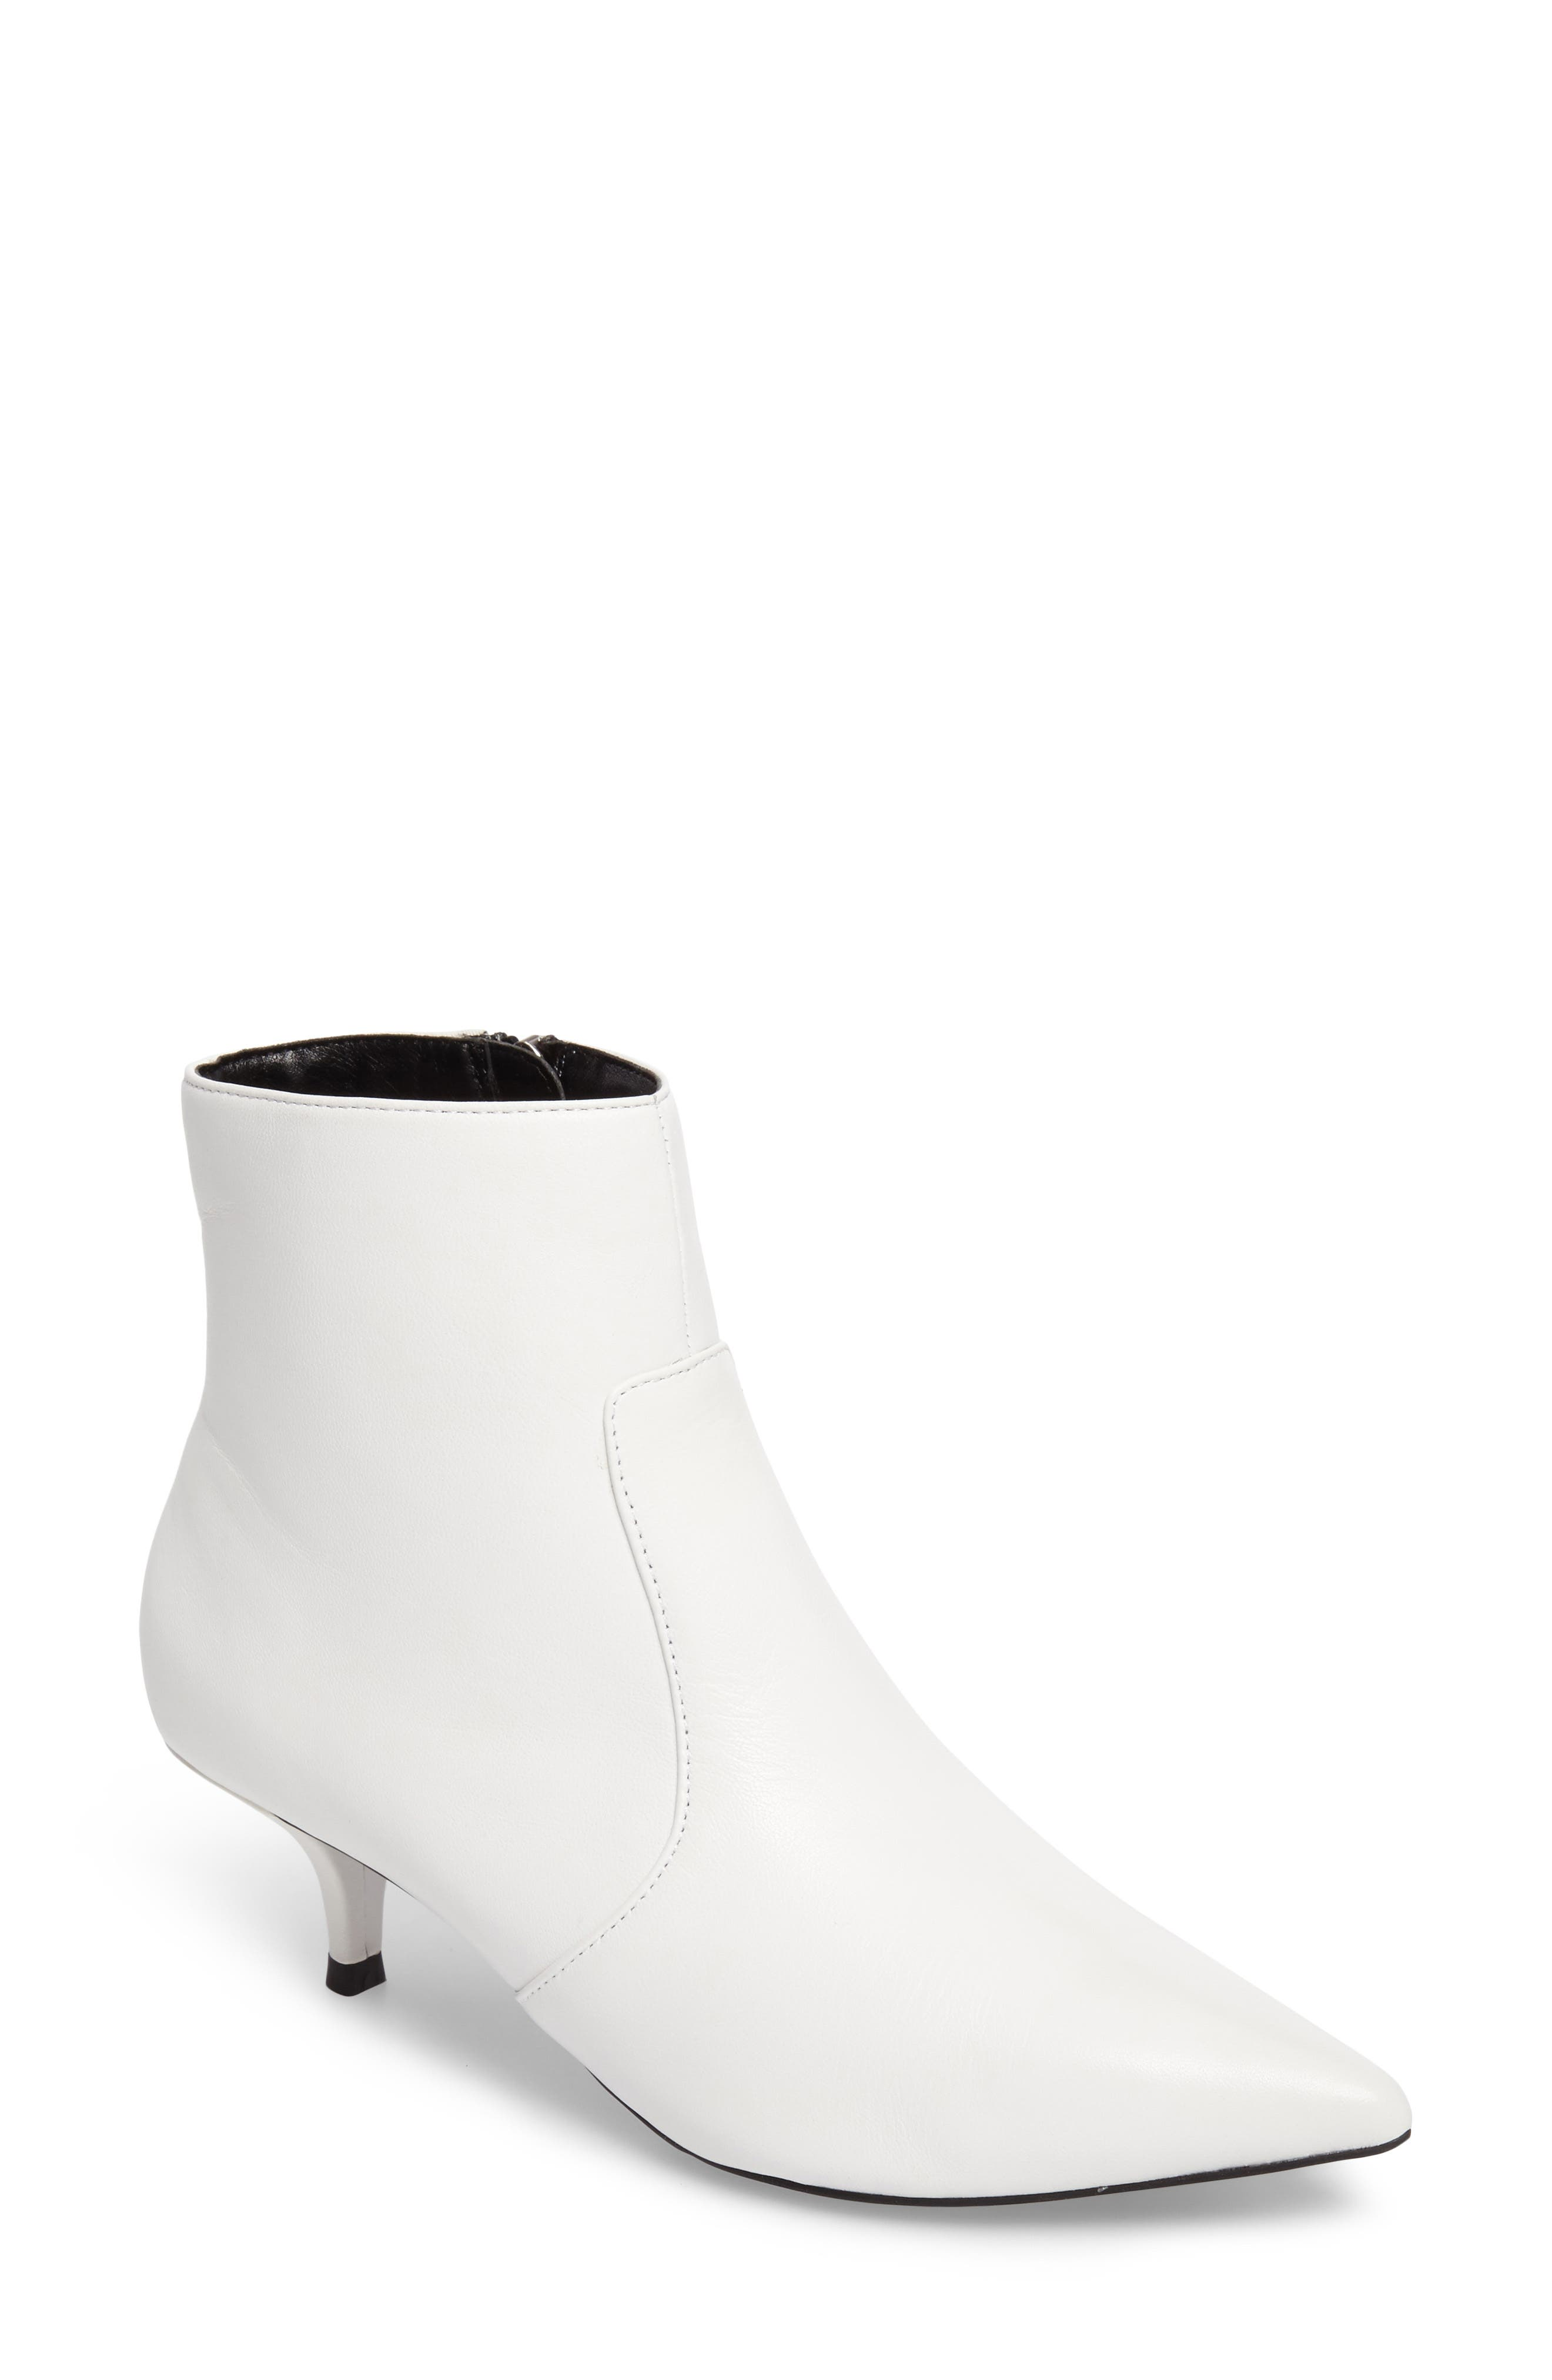 Main Image - Topshop Abba Pointy Toe Bootie (Women)